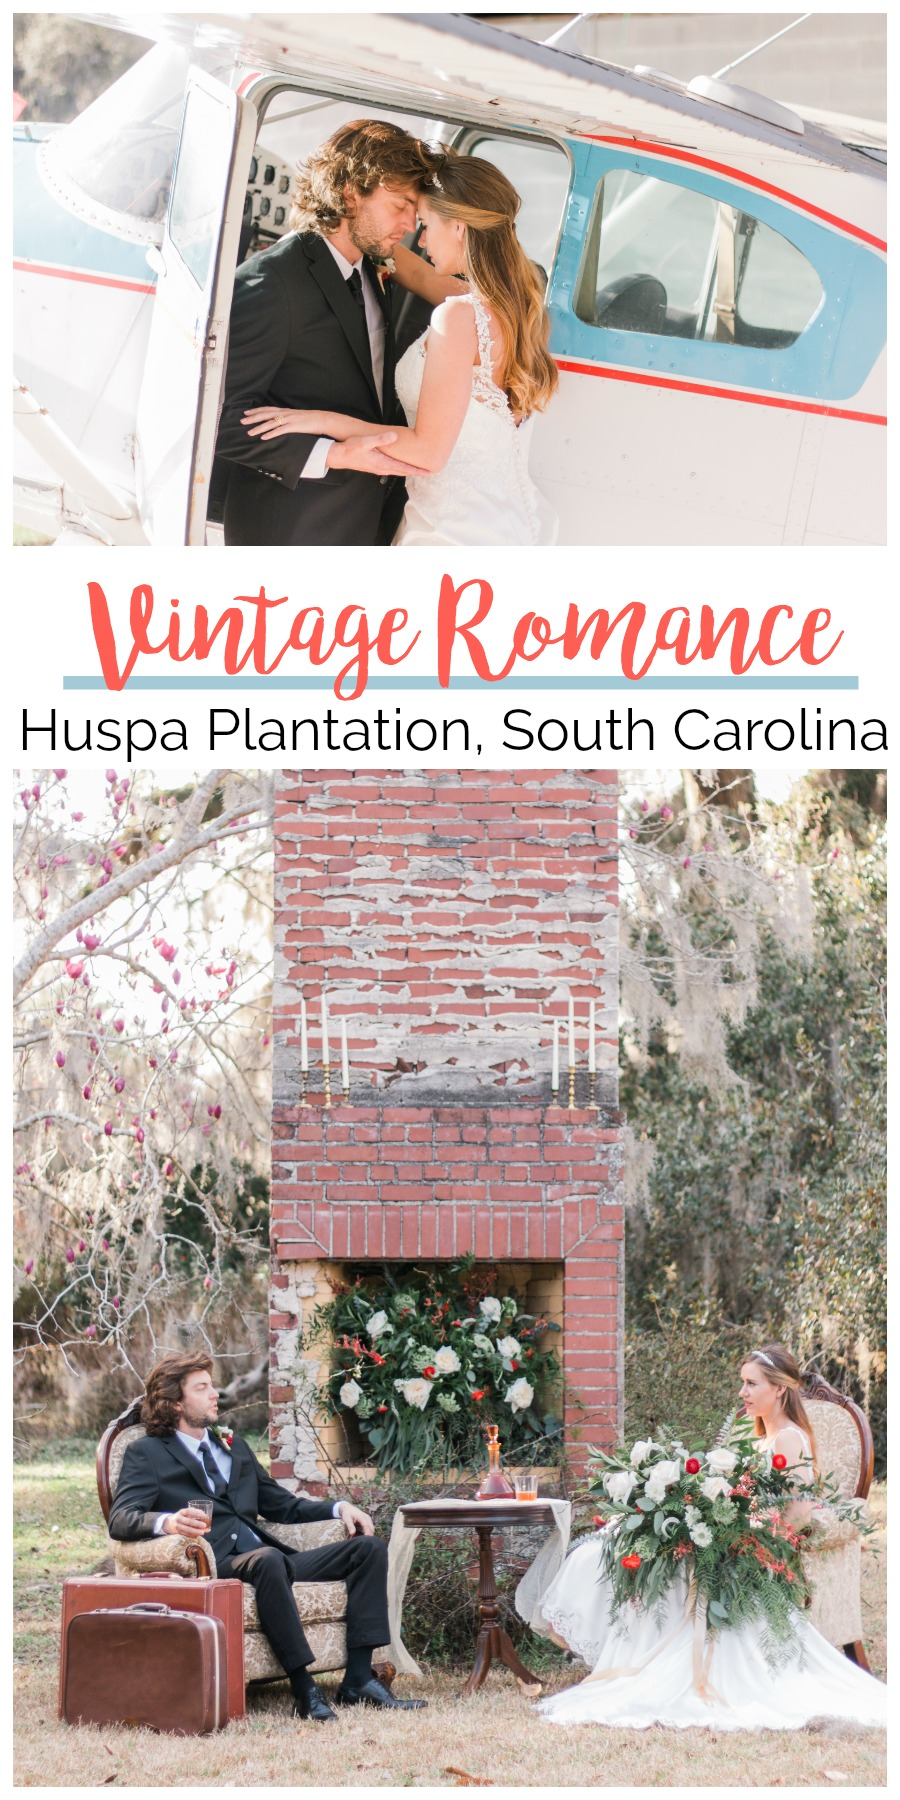 Wedding Inspiration: Vintage Romance at Huspa Plantation, Seabrook, South Carolina | Palmetto State Weddings | Photos by Bluebell Photography